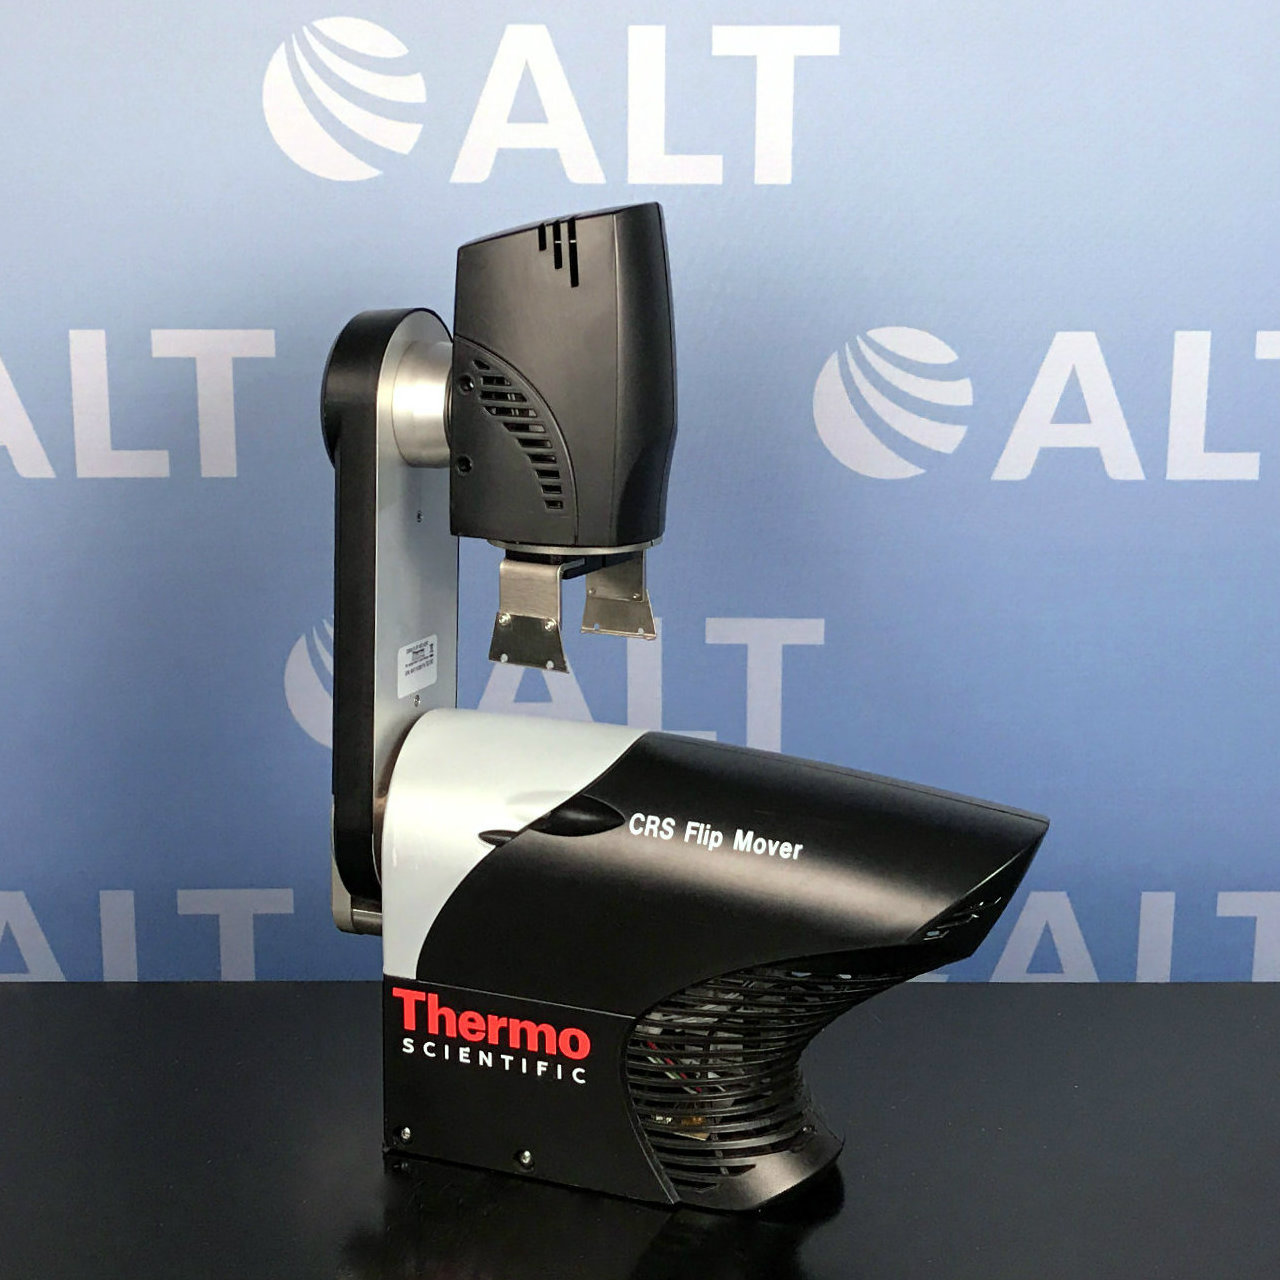 Thermo Scientific CRS Flip Mover Image